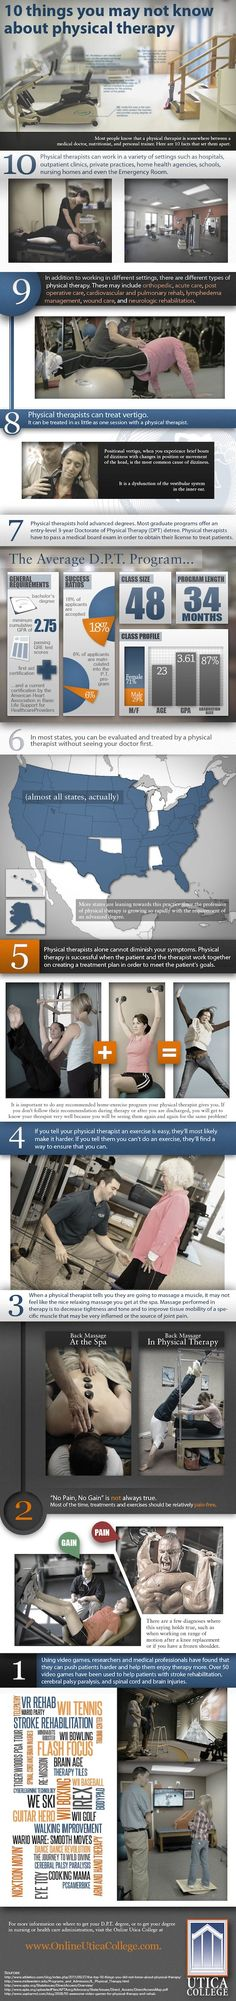 10 Things you may not know about Physical Therapy. Repinned by SOS Inc. Resources @SOS Inc. Resources.